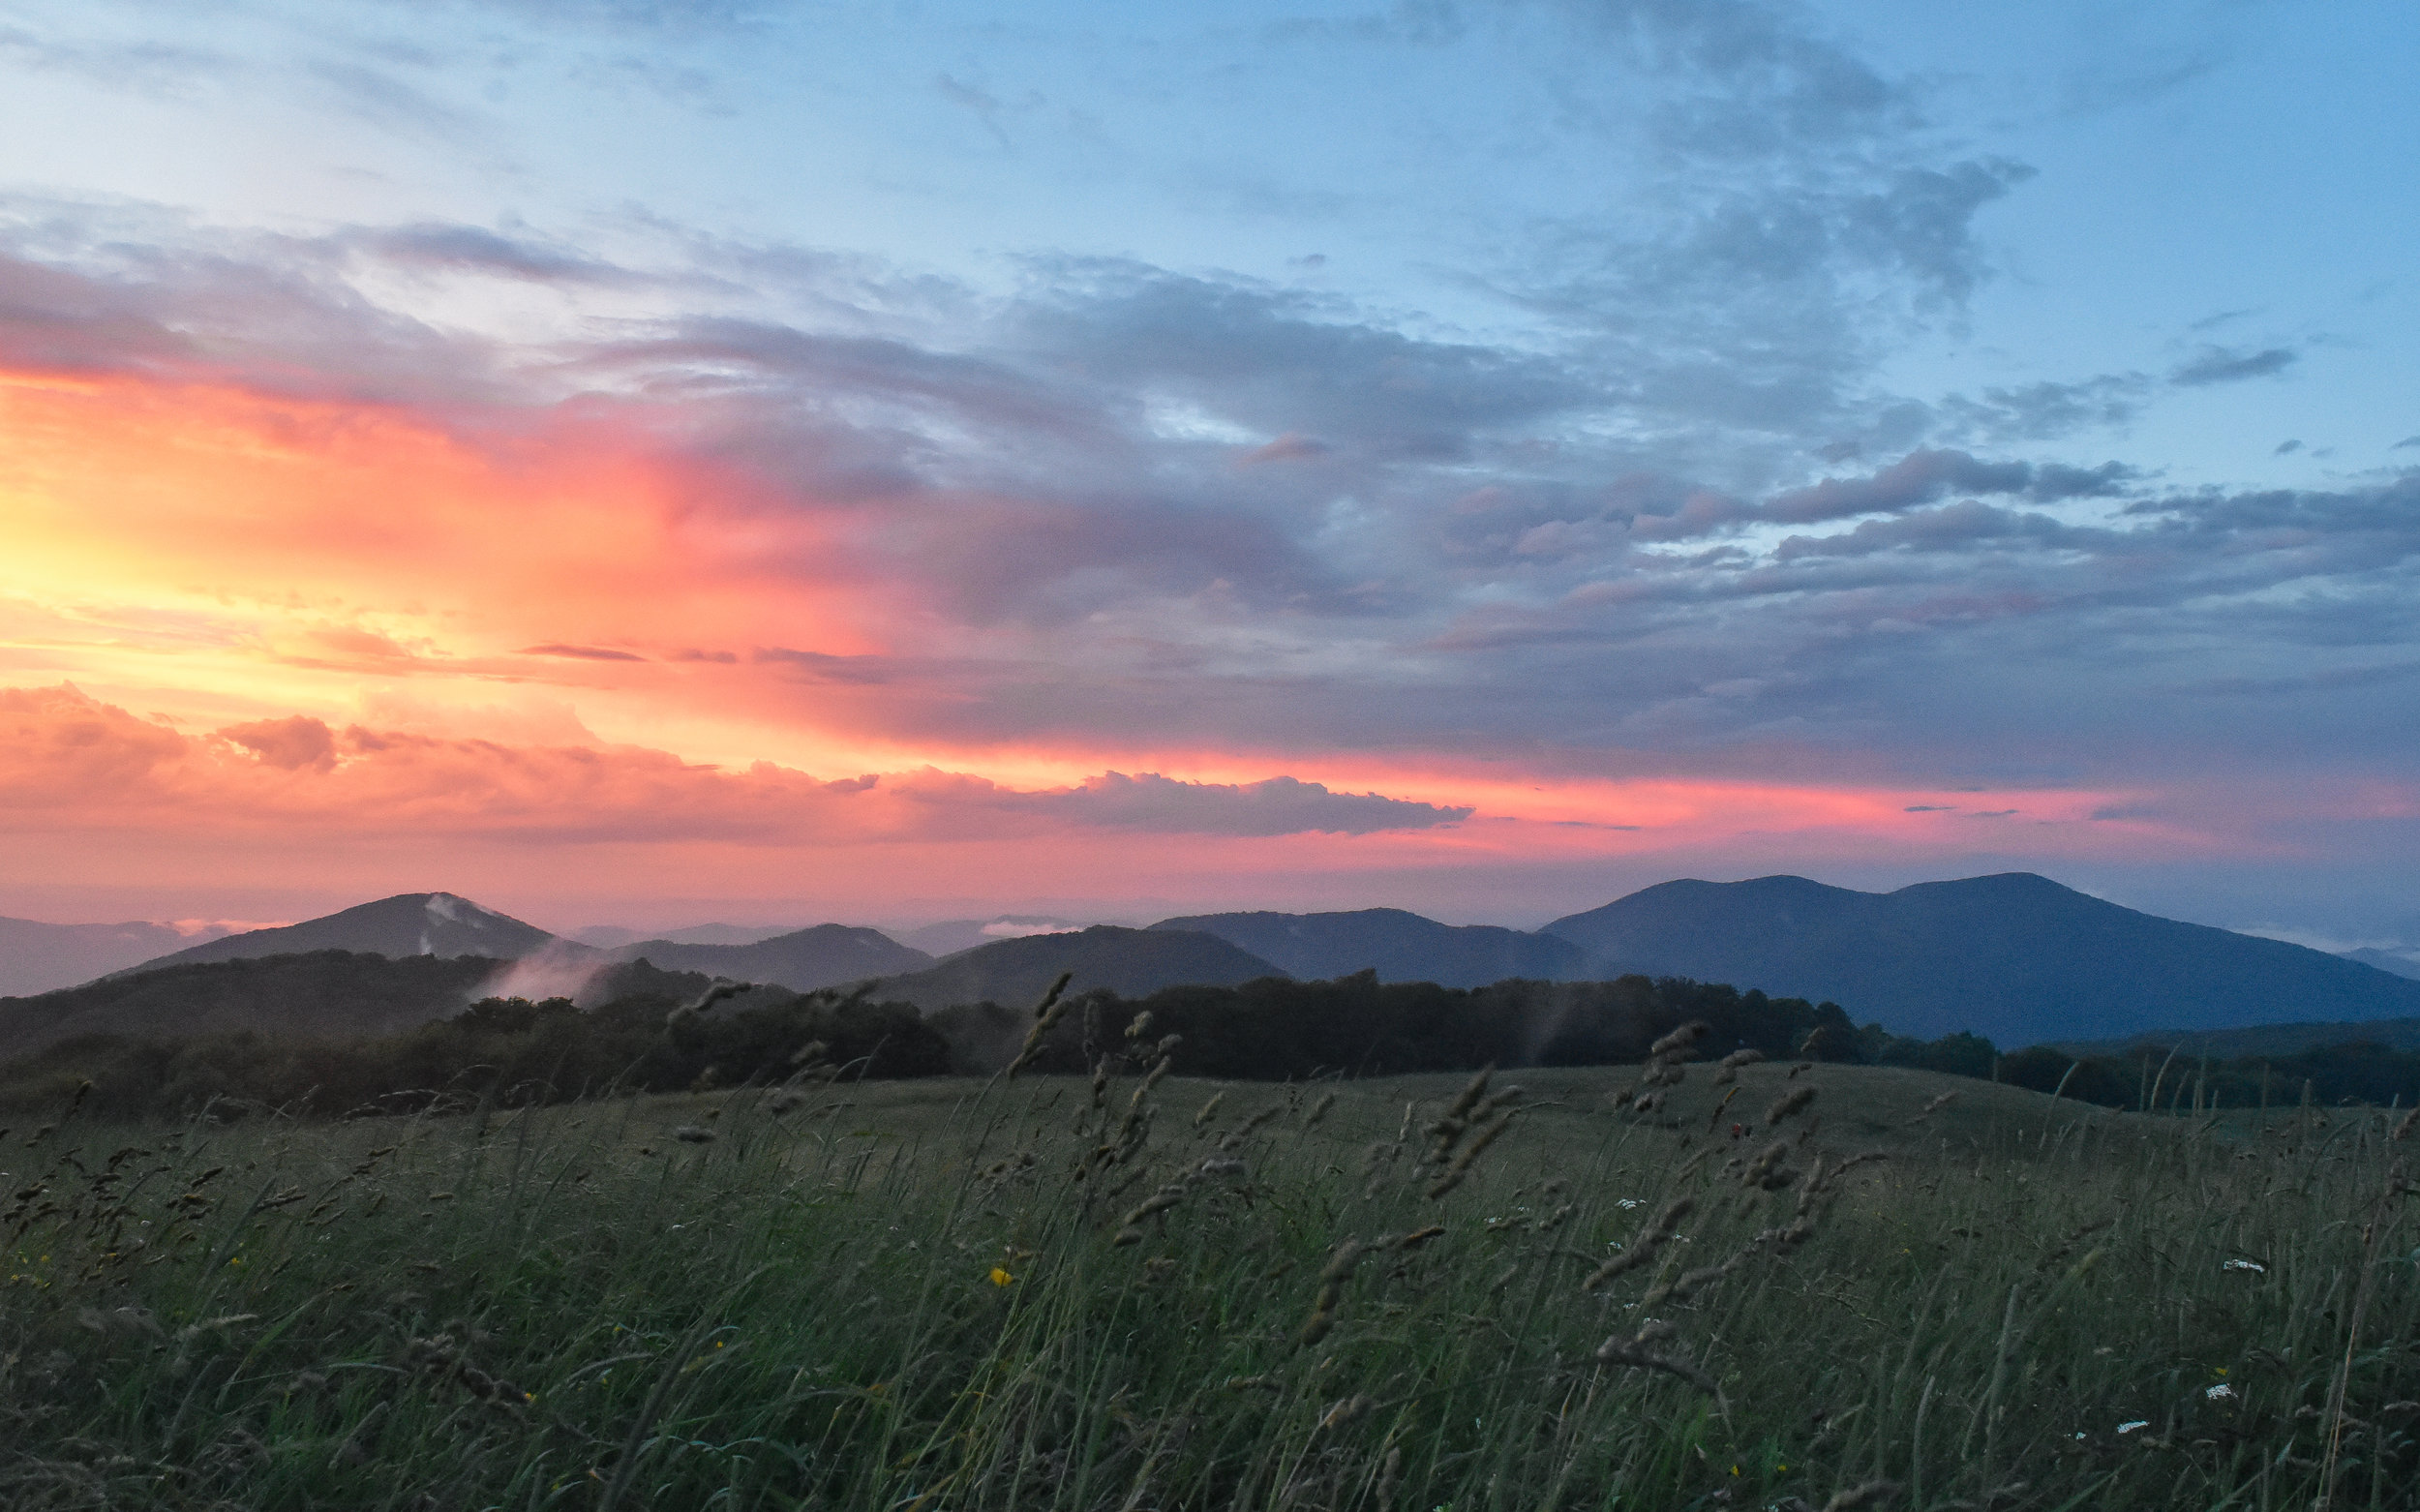 The surrounding storms made for a spectacular sunset at Max Patch.